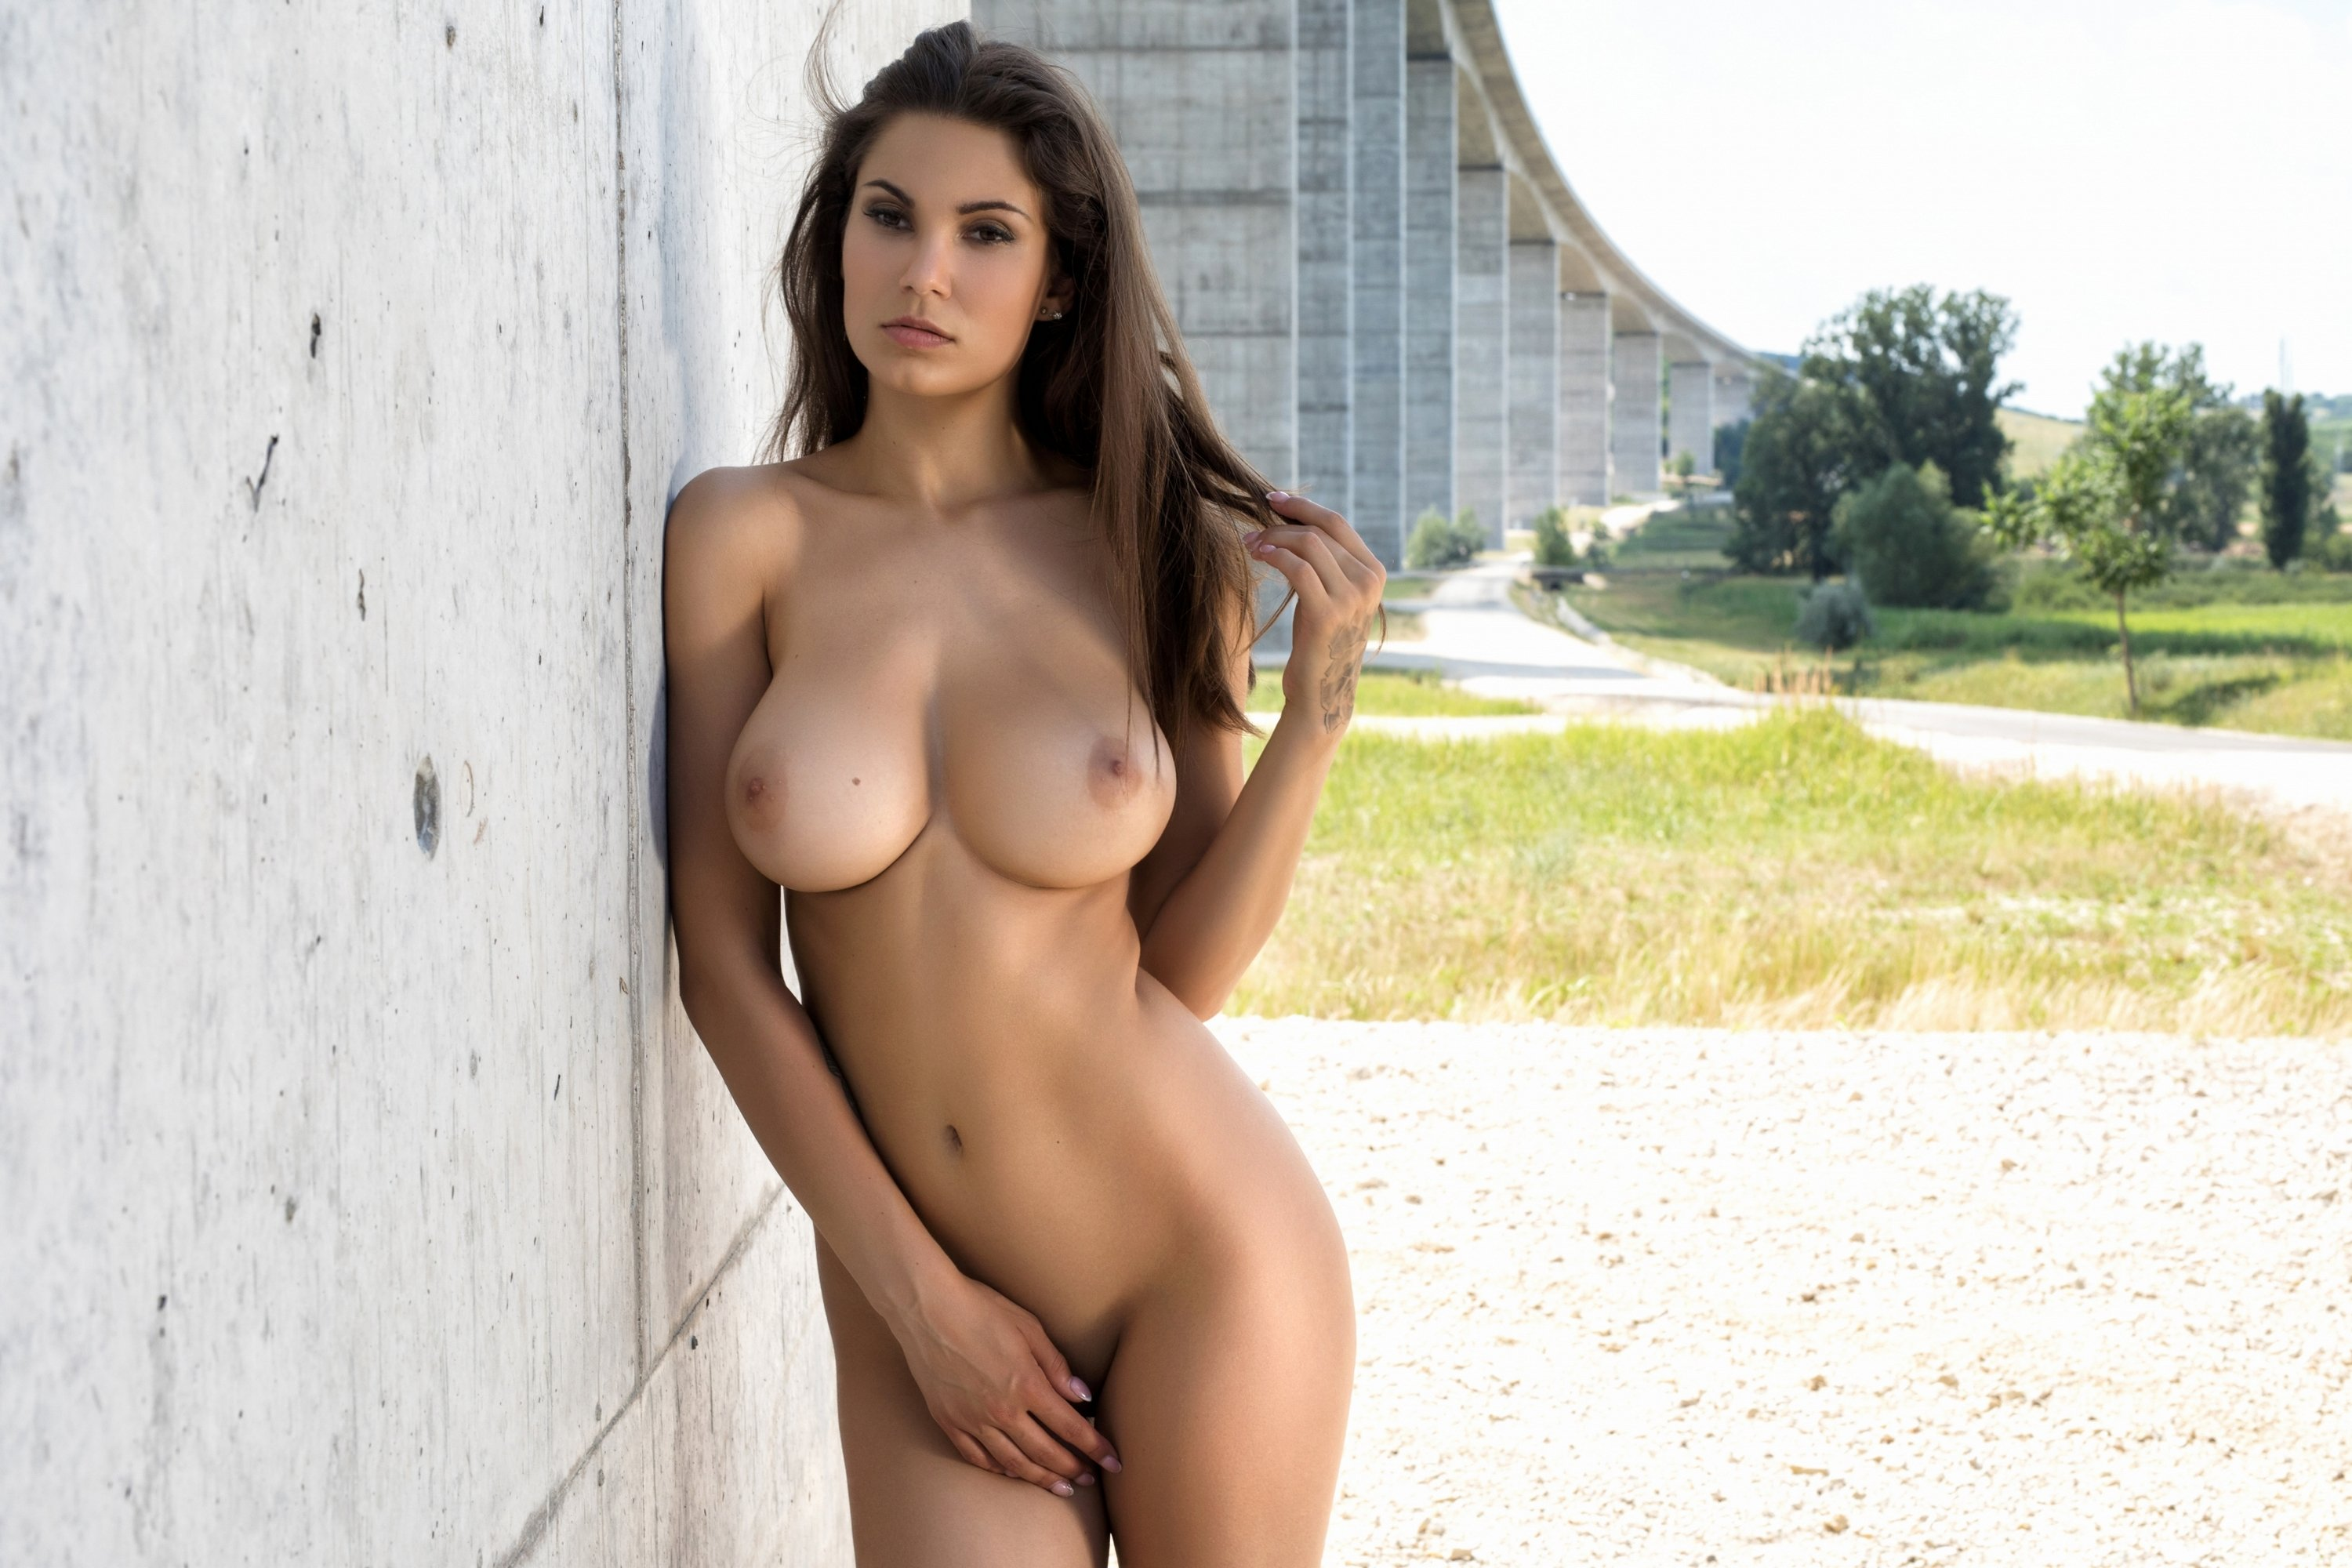 Tits perfect nude Perfect naked